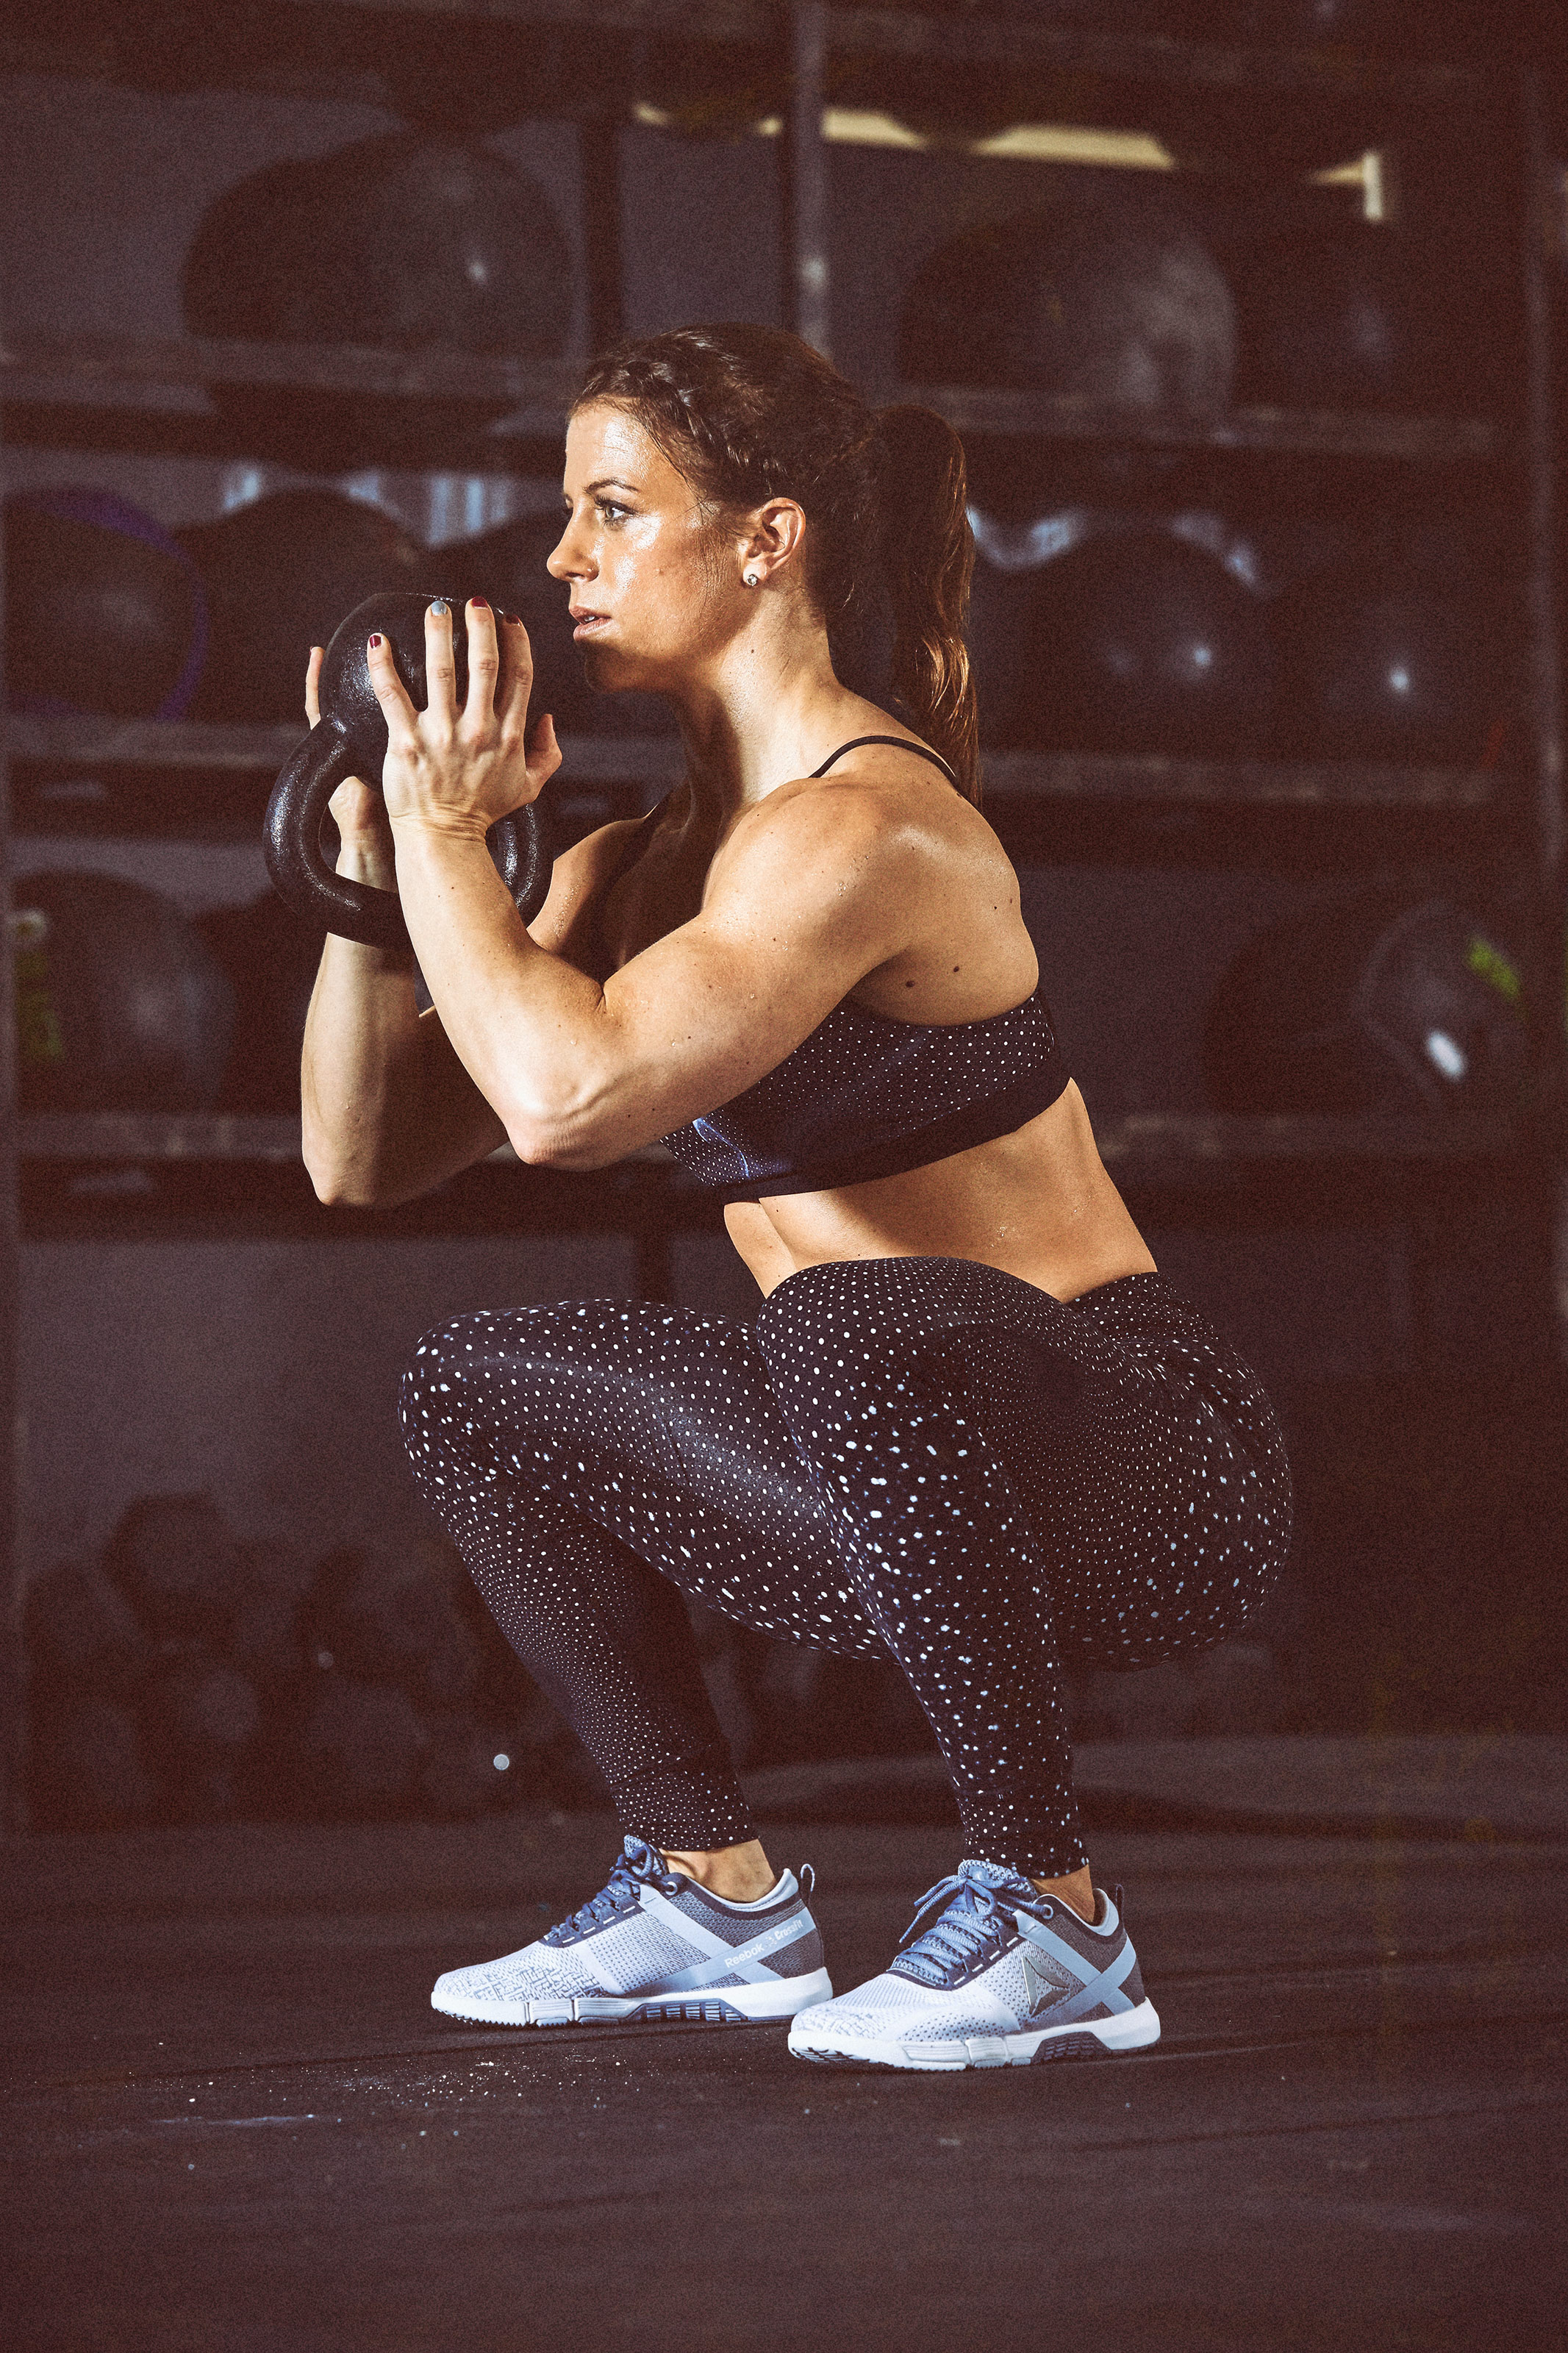 Crossfit Kristin Holte for Reebok